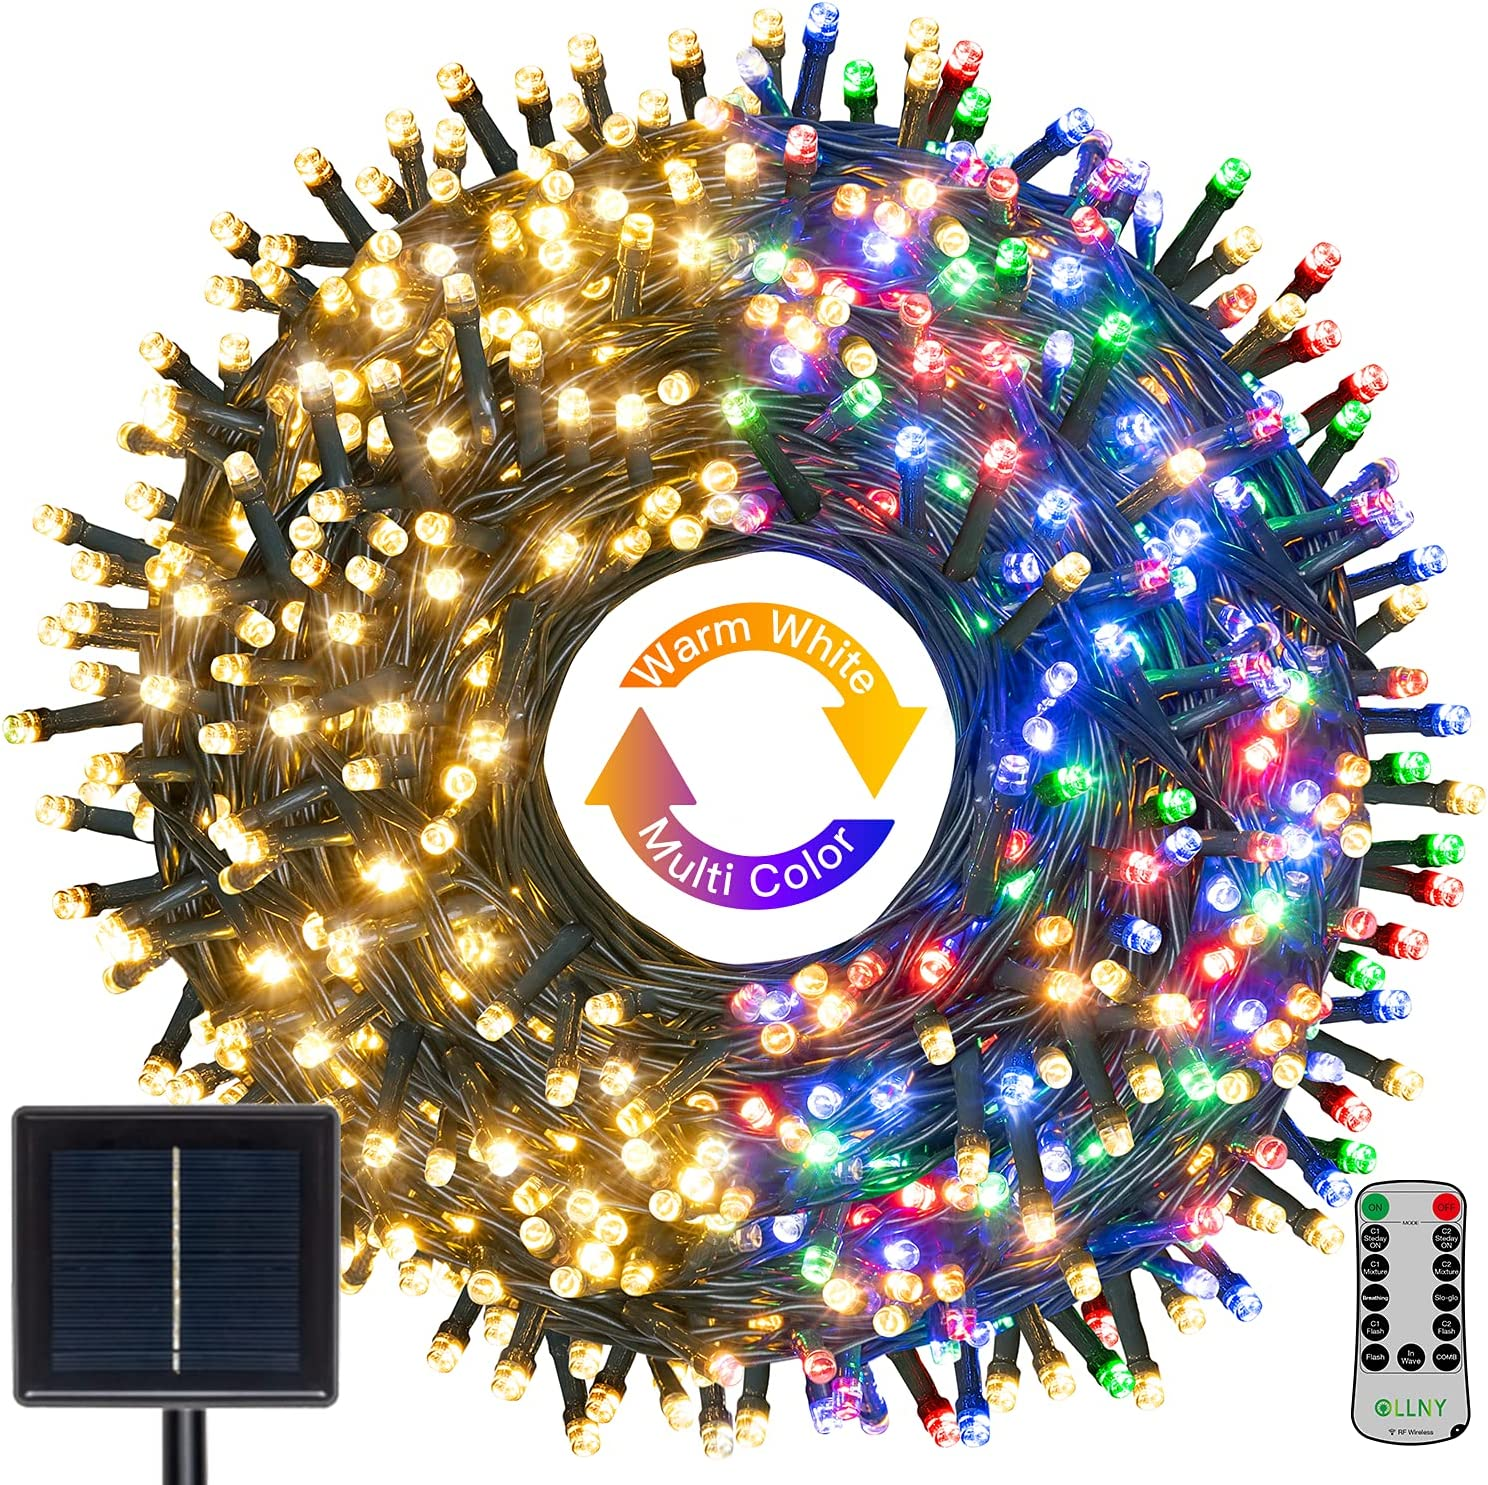 Solar String Lights Outdoor Waterproof, Ollny 300 LED 98FT Christmas Fairy Lights with 11 Lighting Modes, Warm White & Colors Changing Solar Powered Twinkle Lights for Holiday Patio Garden Party Decor